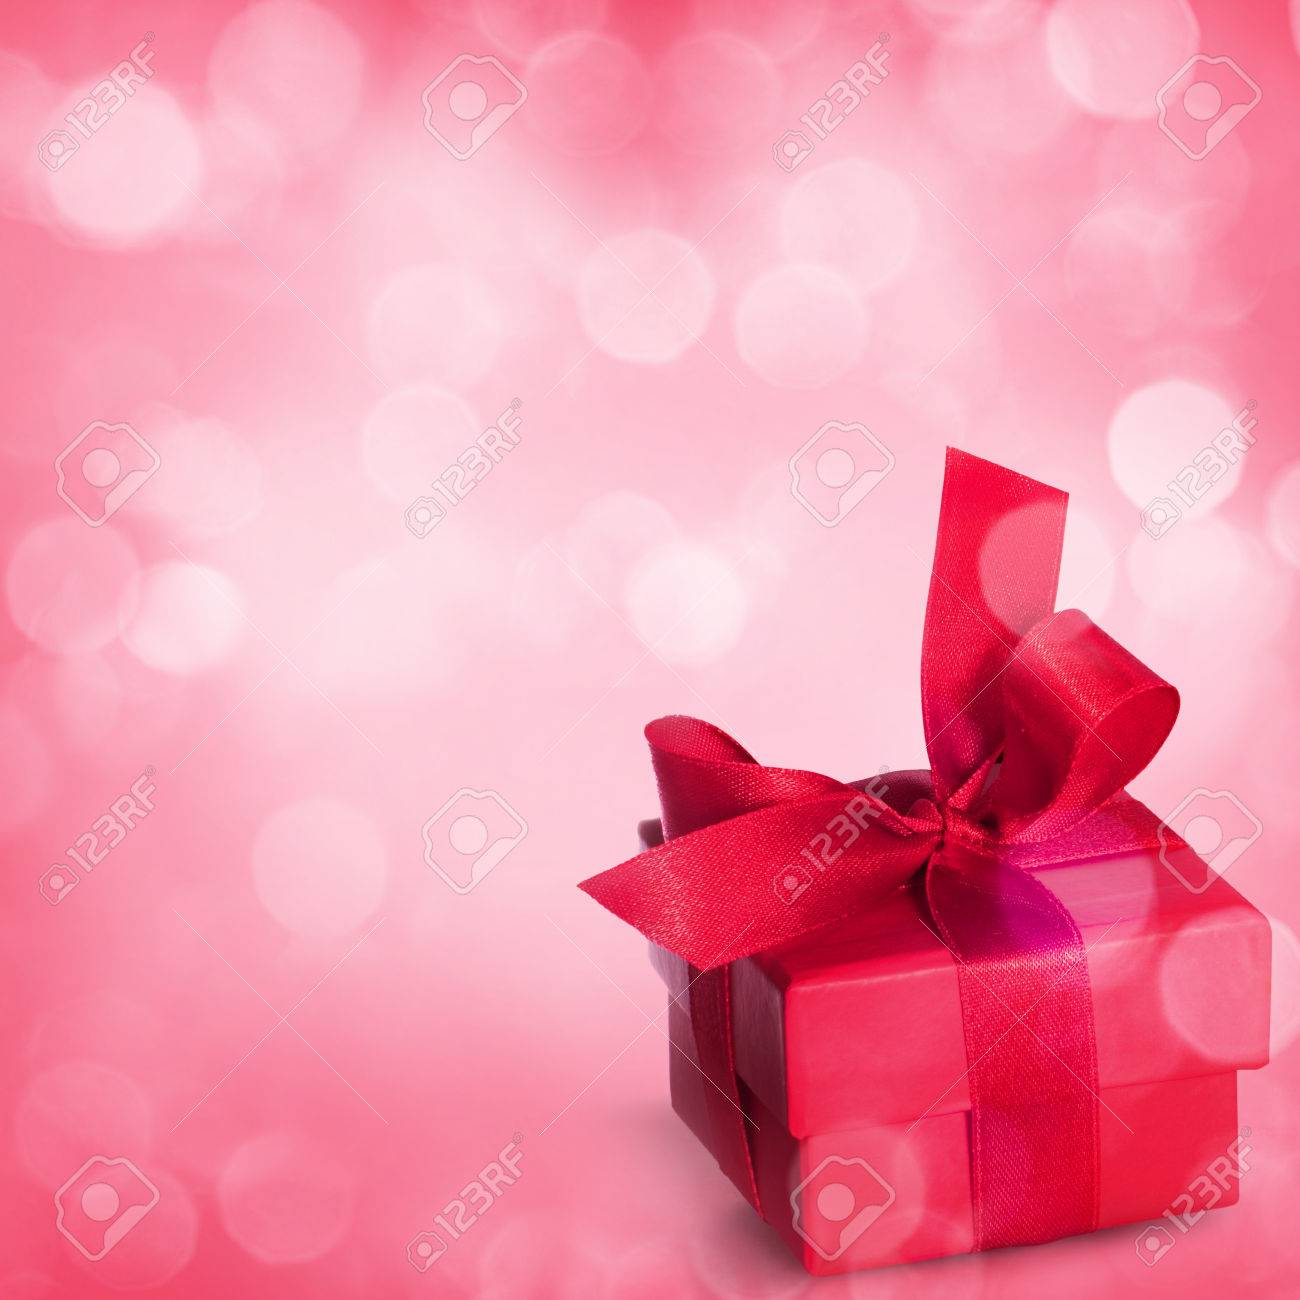 Bouquet of roses and gift box on romantic background - 43347795